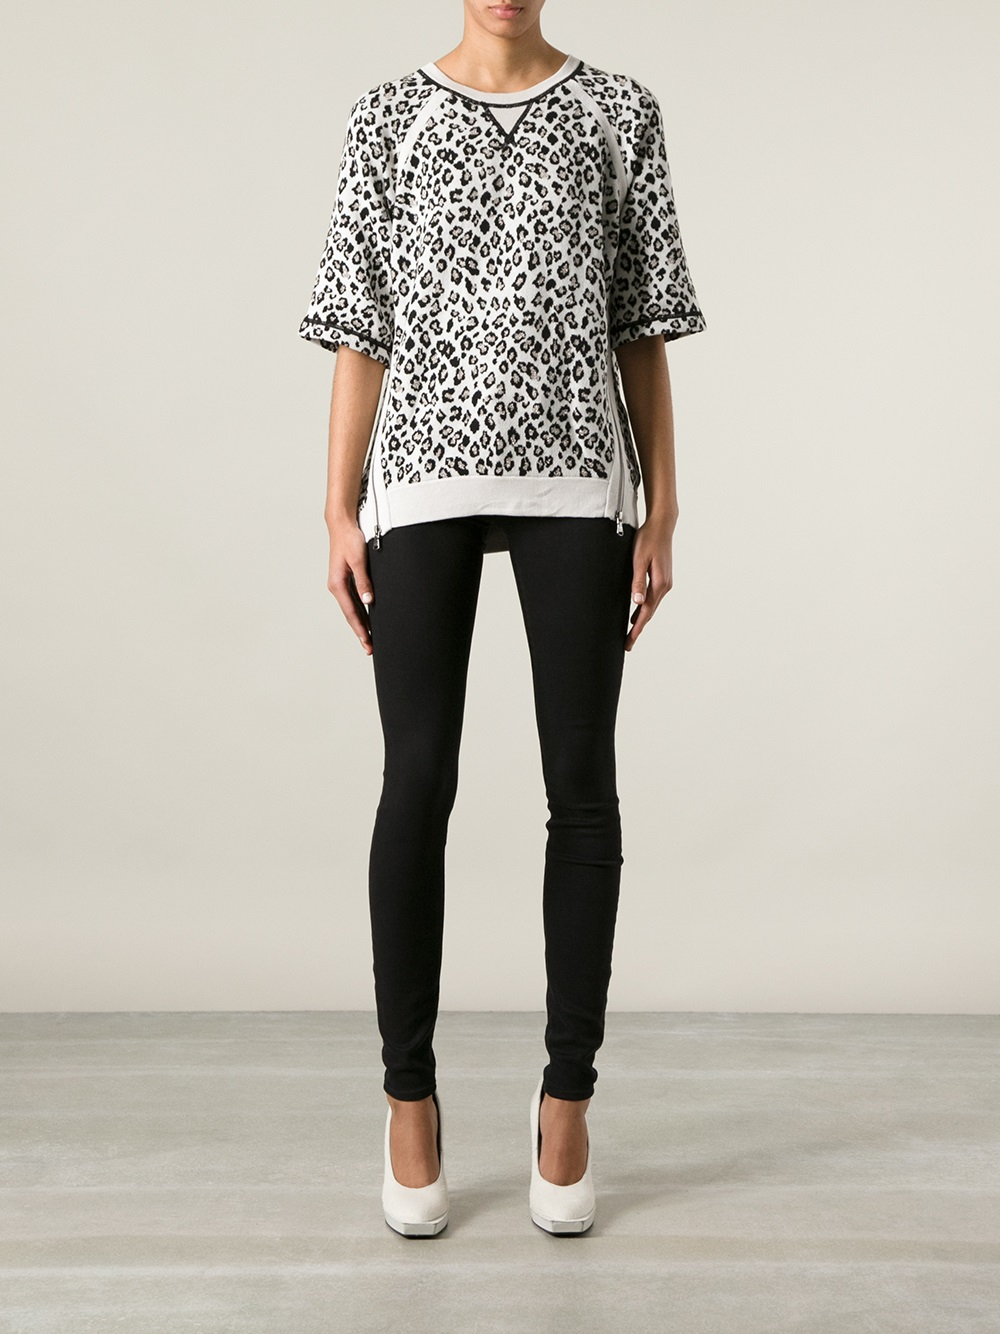 bbb7a1d8861c Marc By Marc Jacobs Zip Detail Leopard Print Sweater in Gray - Lyst